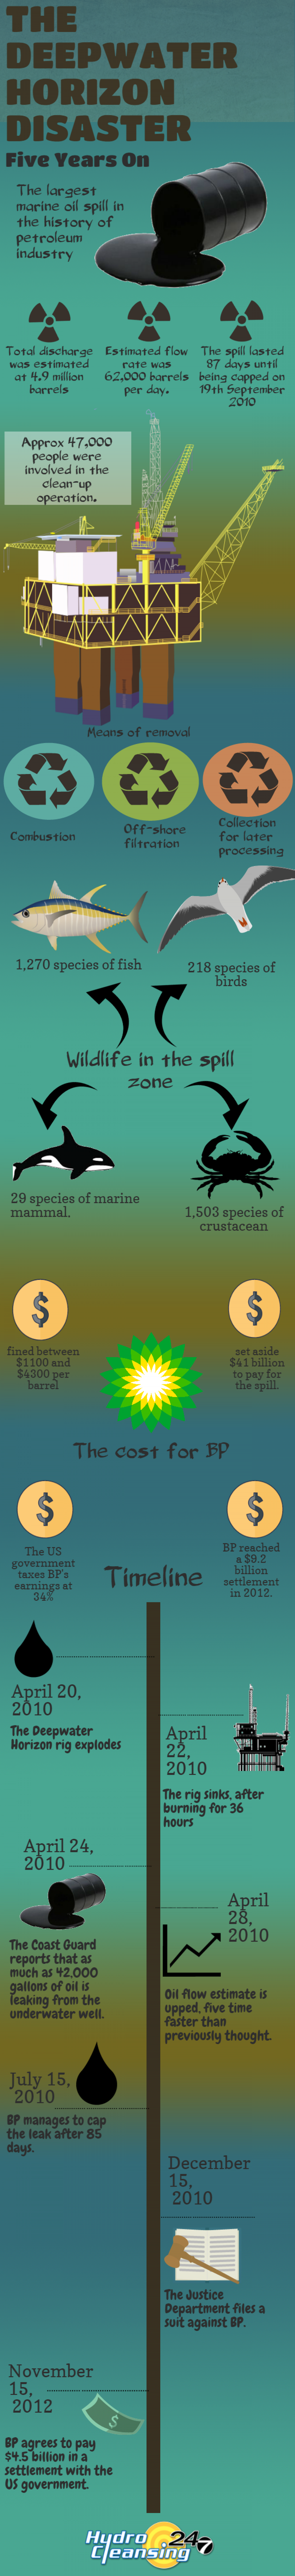 The Deepwater Horizon Oil Spill: Five Years On Infographic